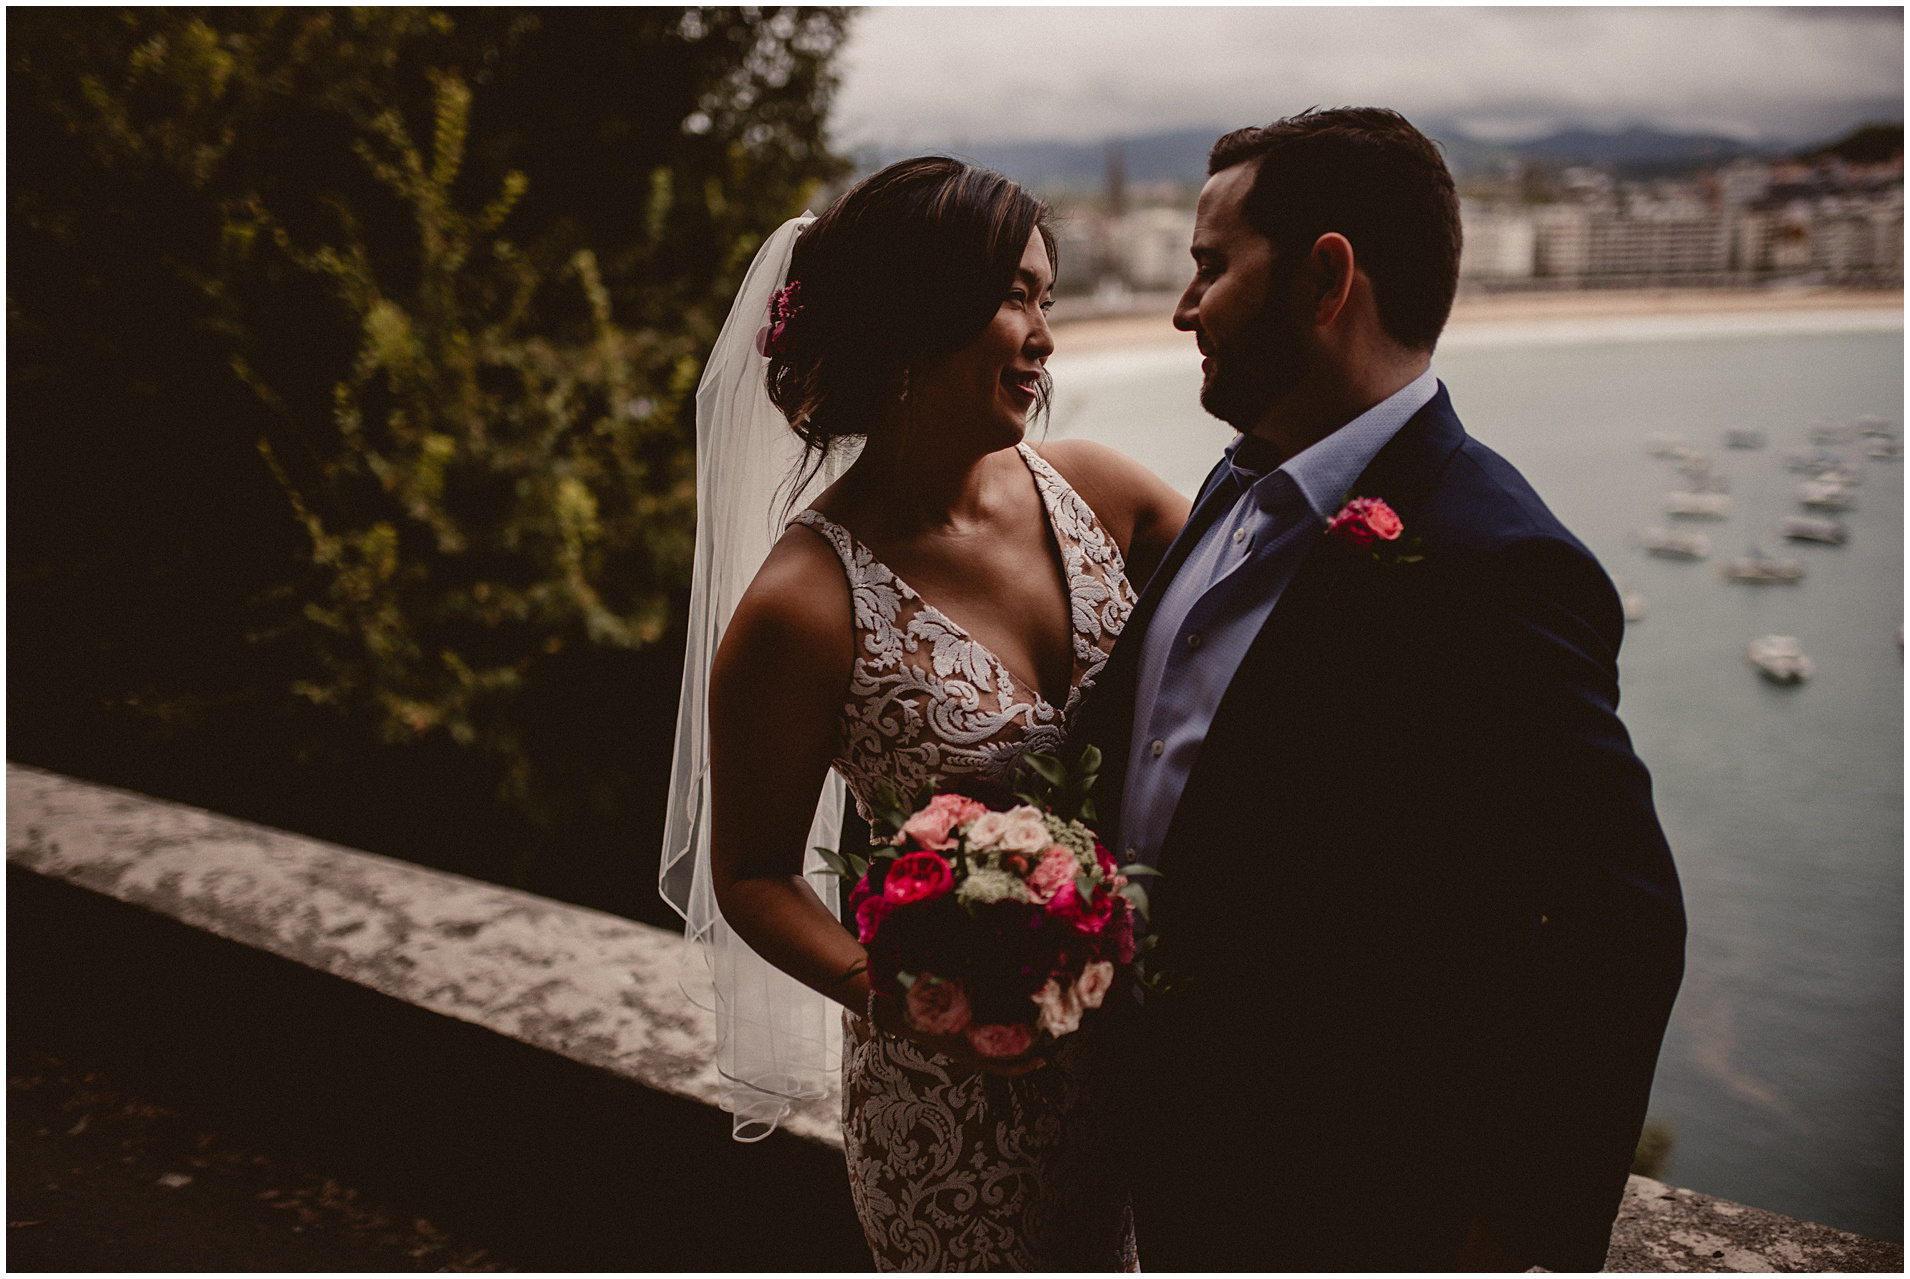 Brian & Julia - Destination wedding in San Sebastián  - Elopement in San Sebastian- ARTEFOTO52.jpg